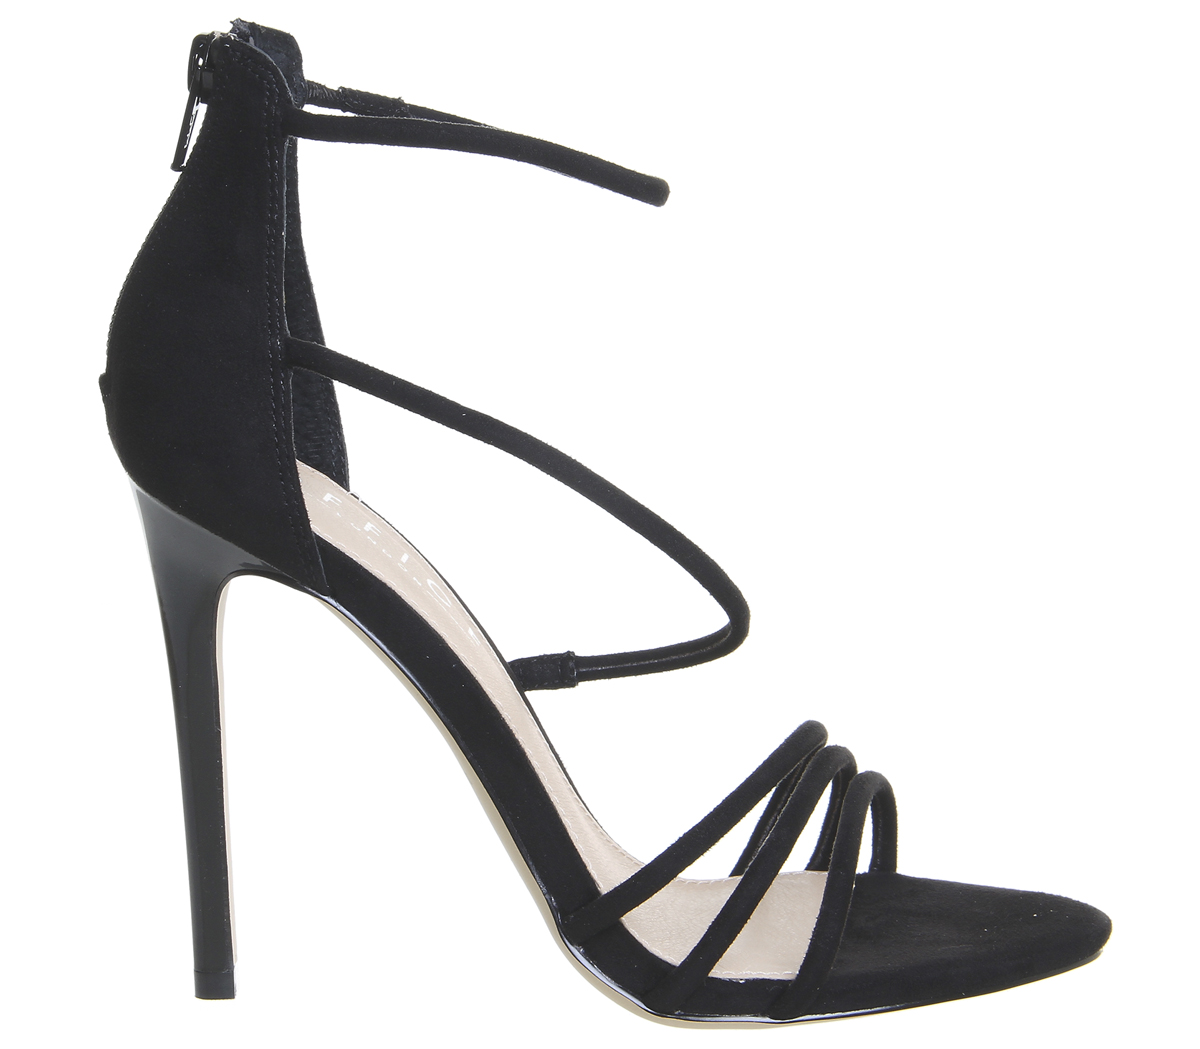 eacb81c1514 Womens-Office-Harness-Strappy-Sandals-Black-Heels thumbnail 4